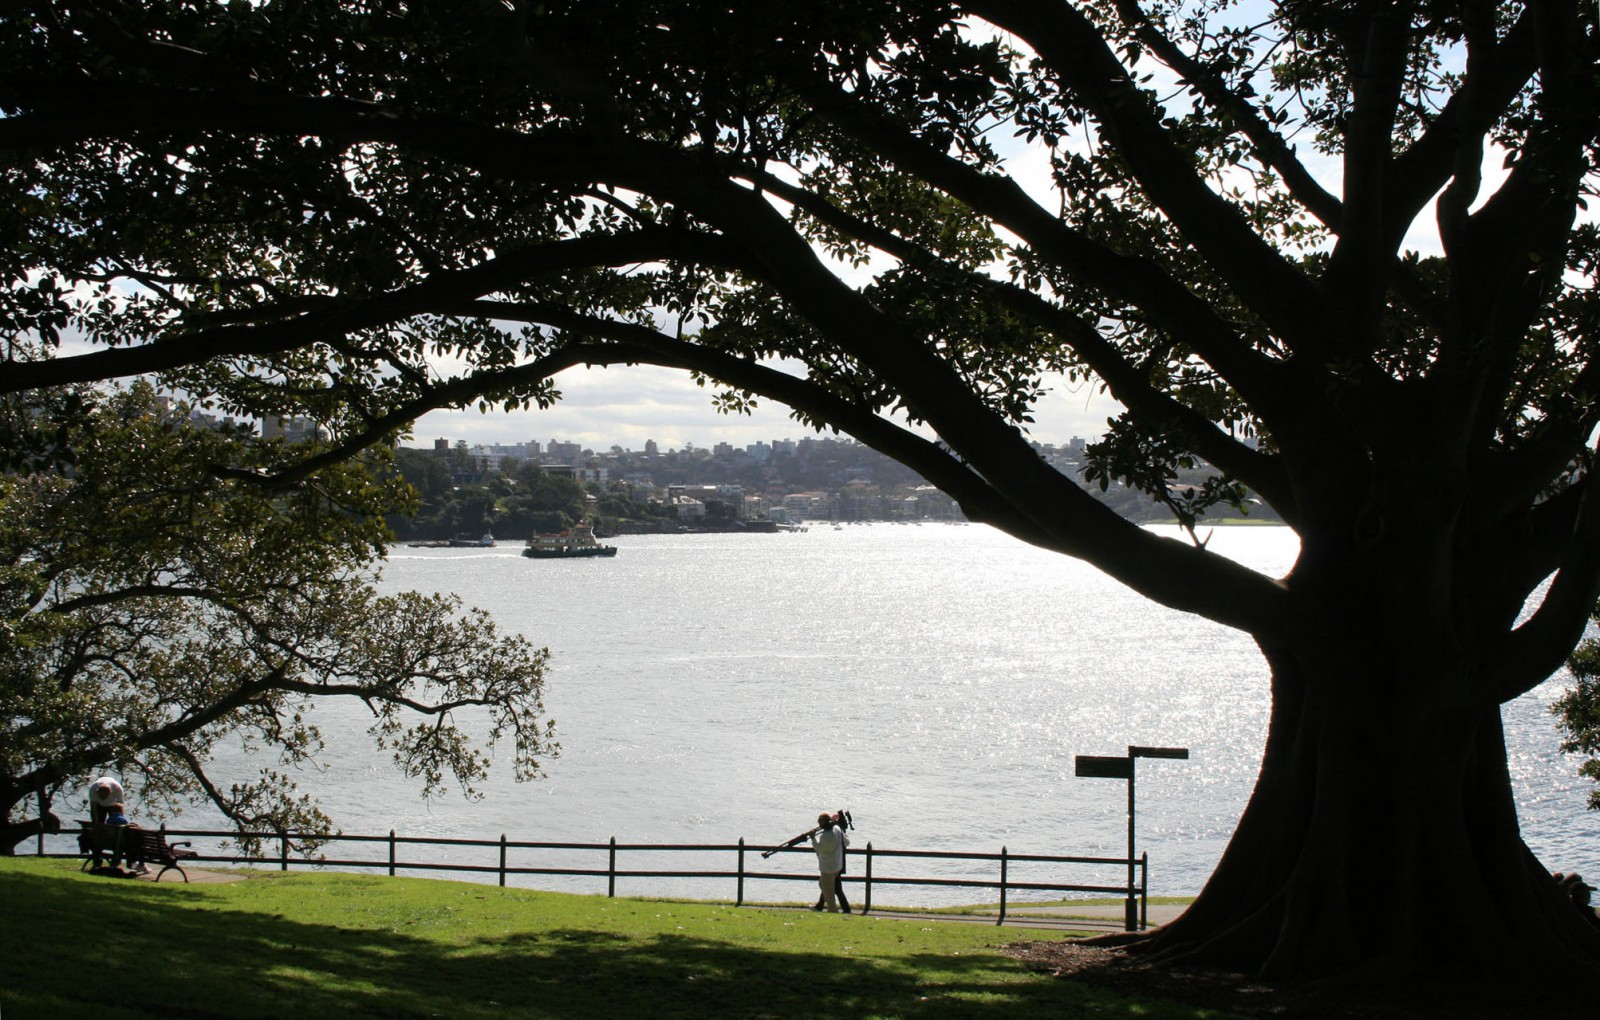 The Sydney landscape owes much to our 19th century parks and the signature plantings of the long term directors of the Sydney Royal Botanic Gardens at that time, Charles Moore (1848-1896) and Joseph Maiden (1896-1924).